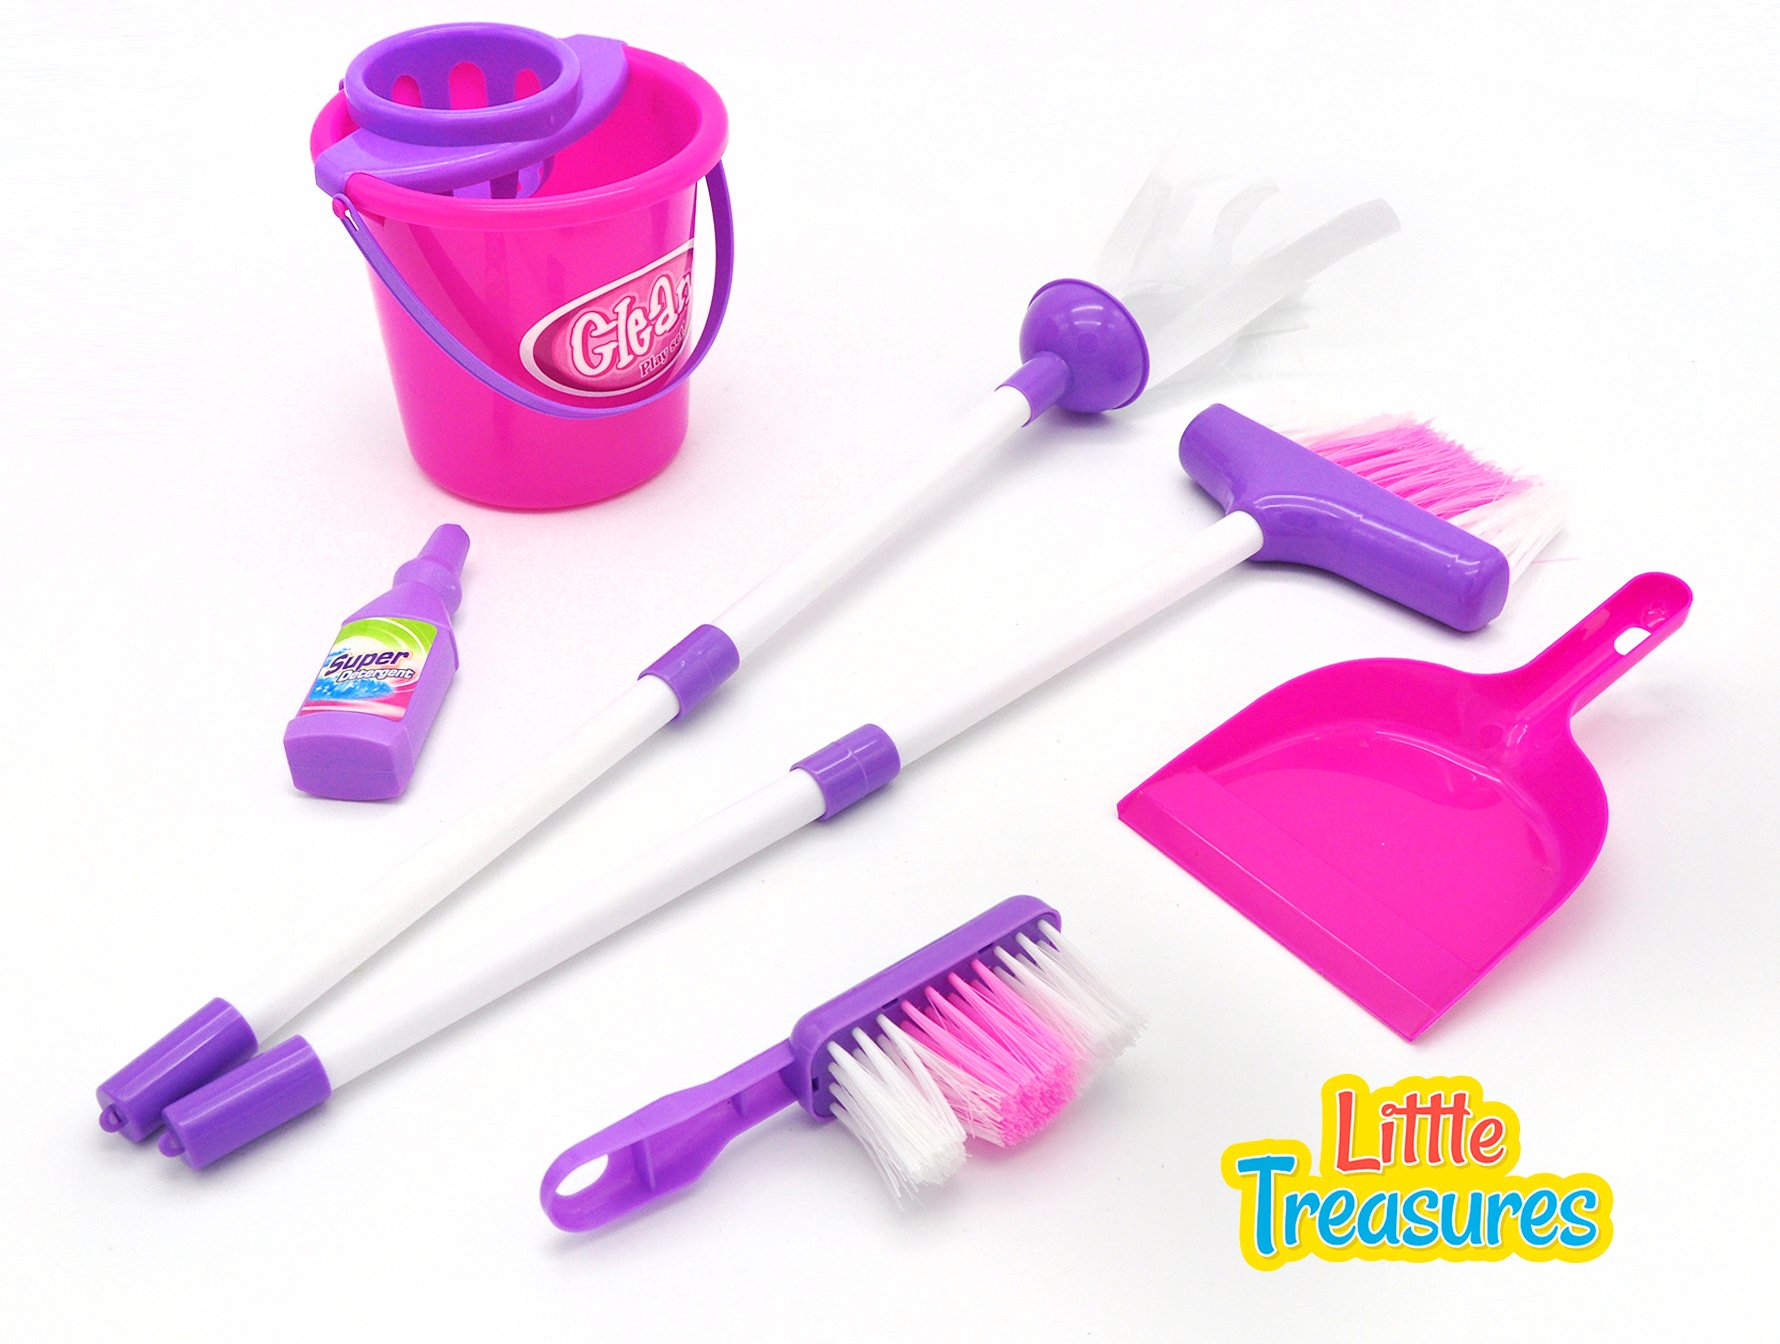 Little Treasures My little helper cleaning play set Complete with small sized broom, mop, bucket, super detergent, hand-broom and dustpan play set for children ages 3